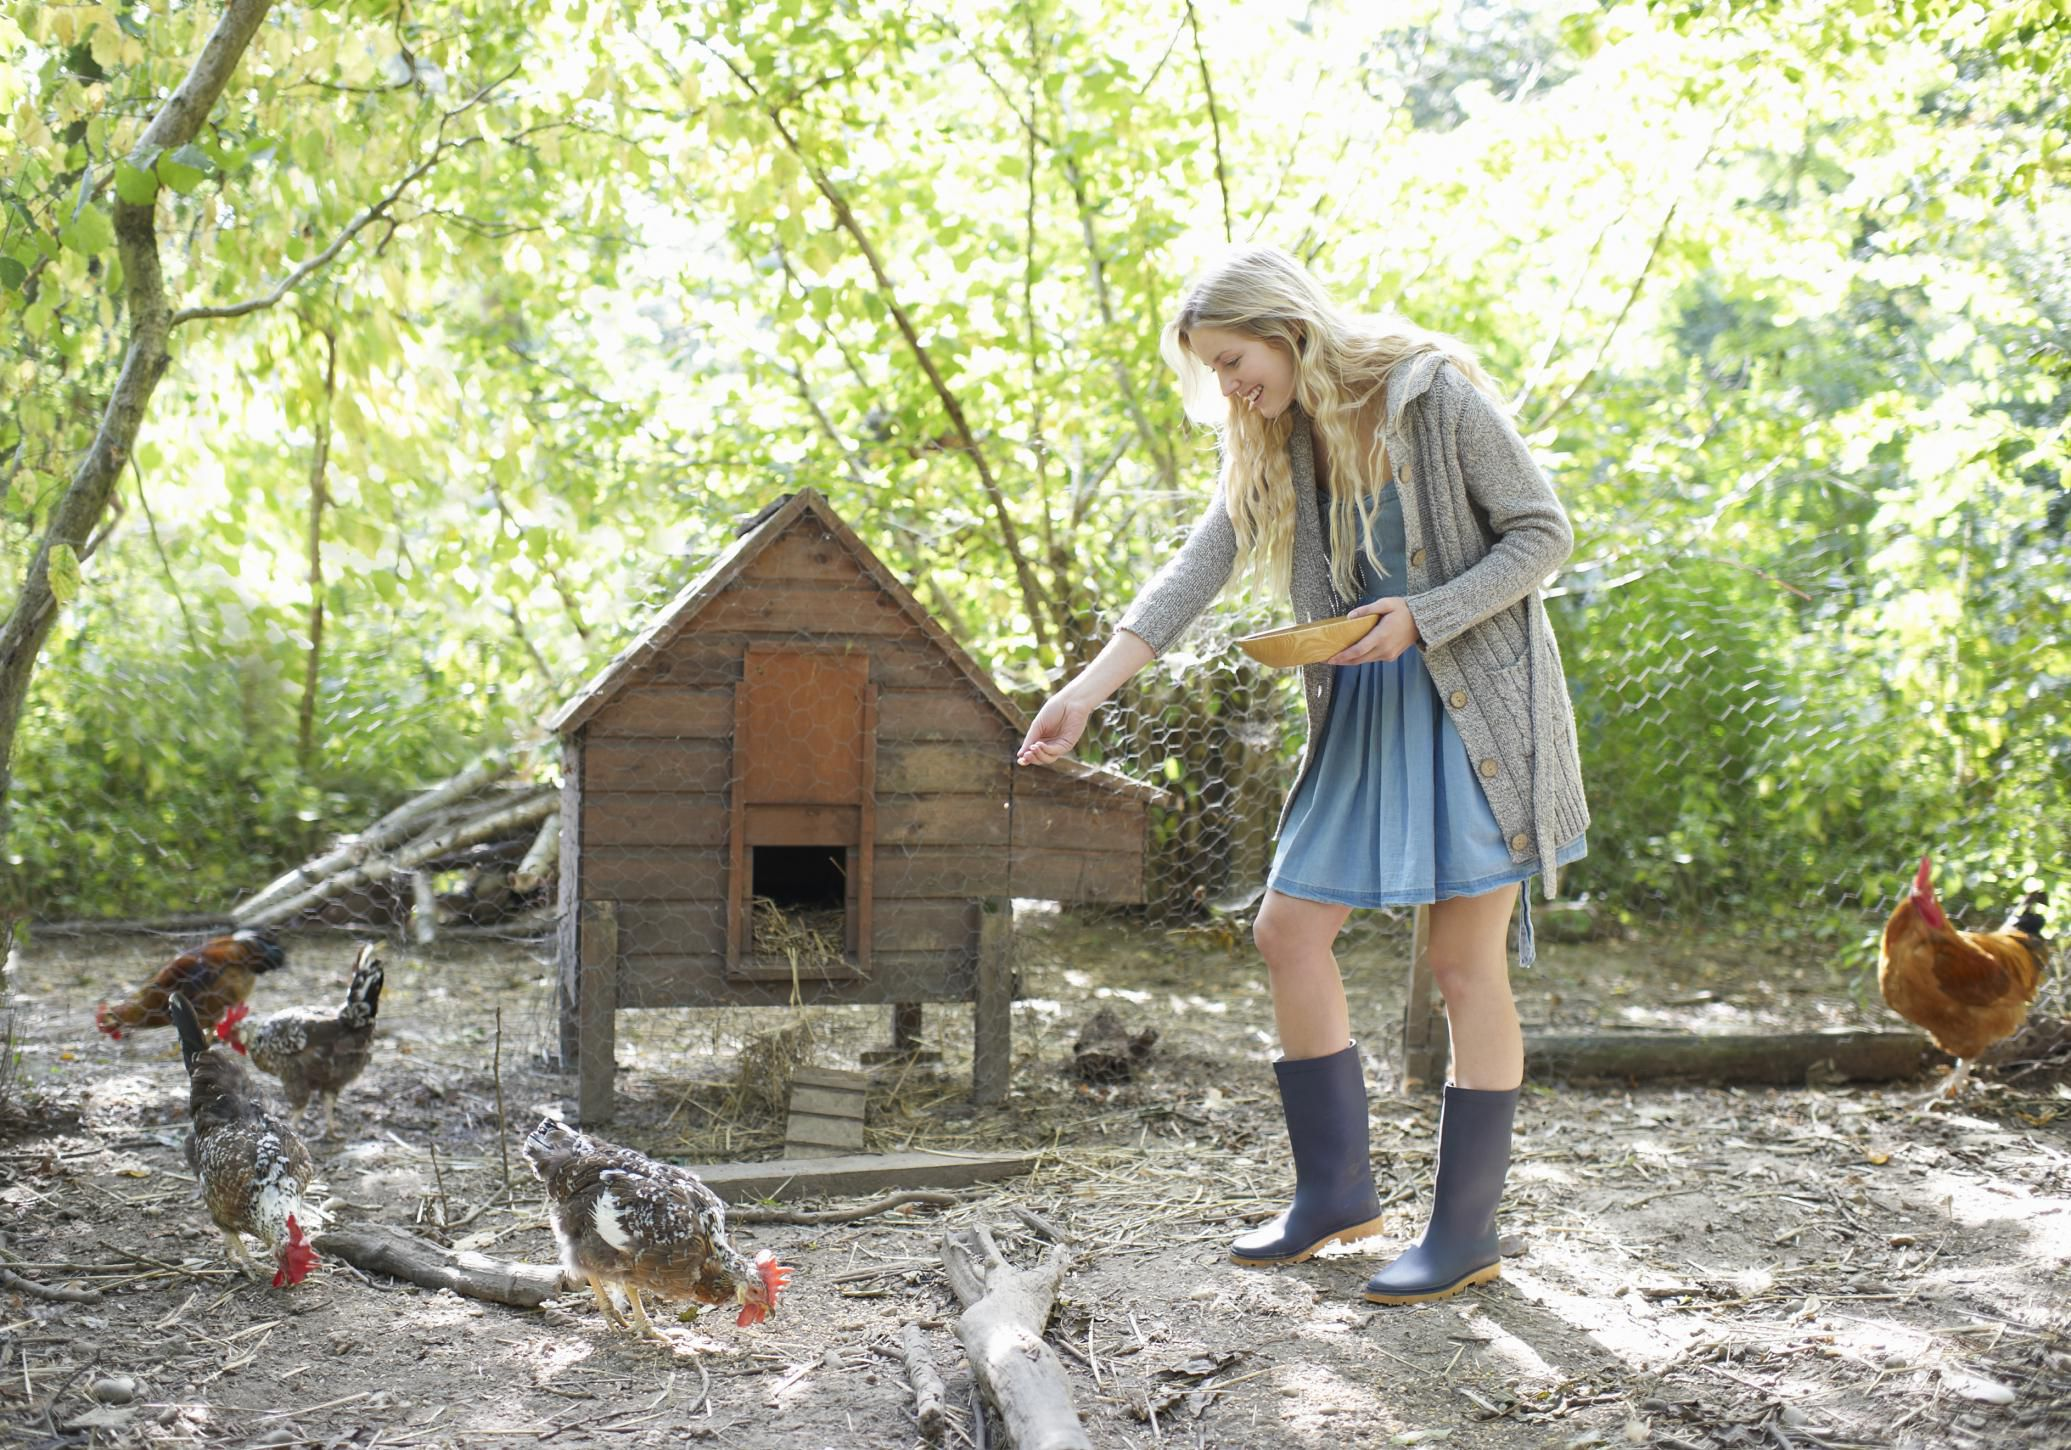 An Overview Of How To Build A Portable Chicken Coop